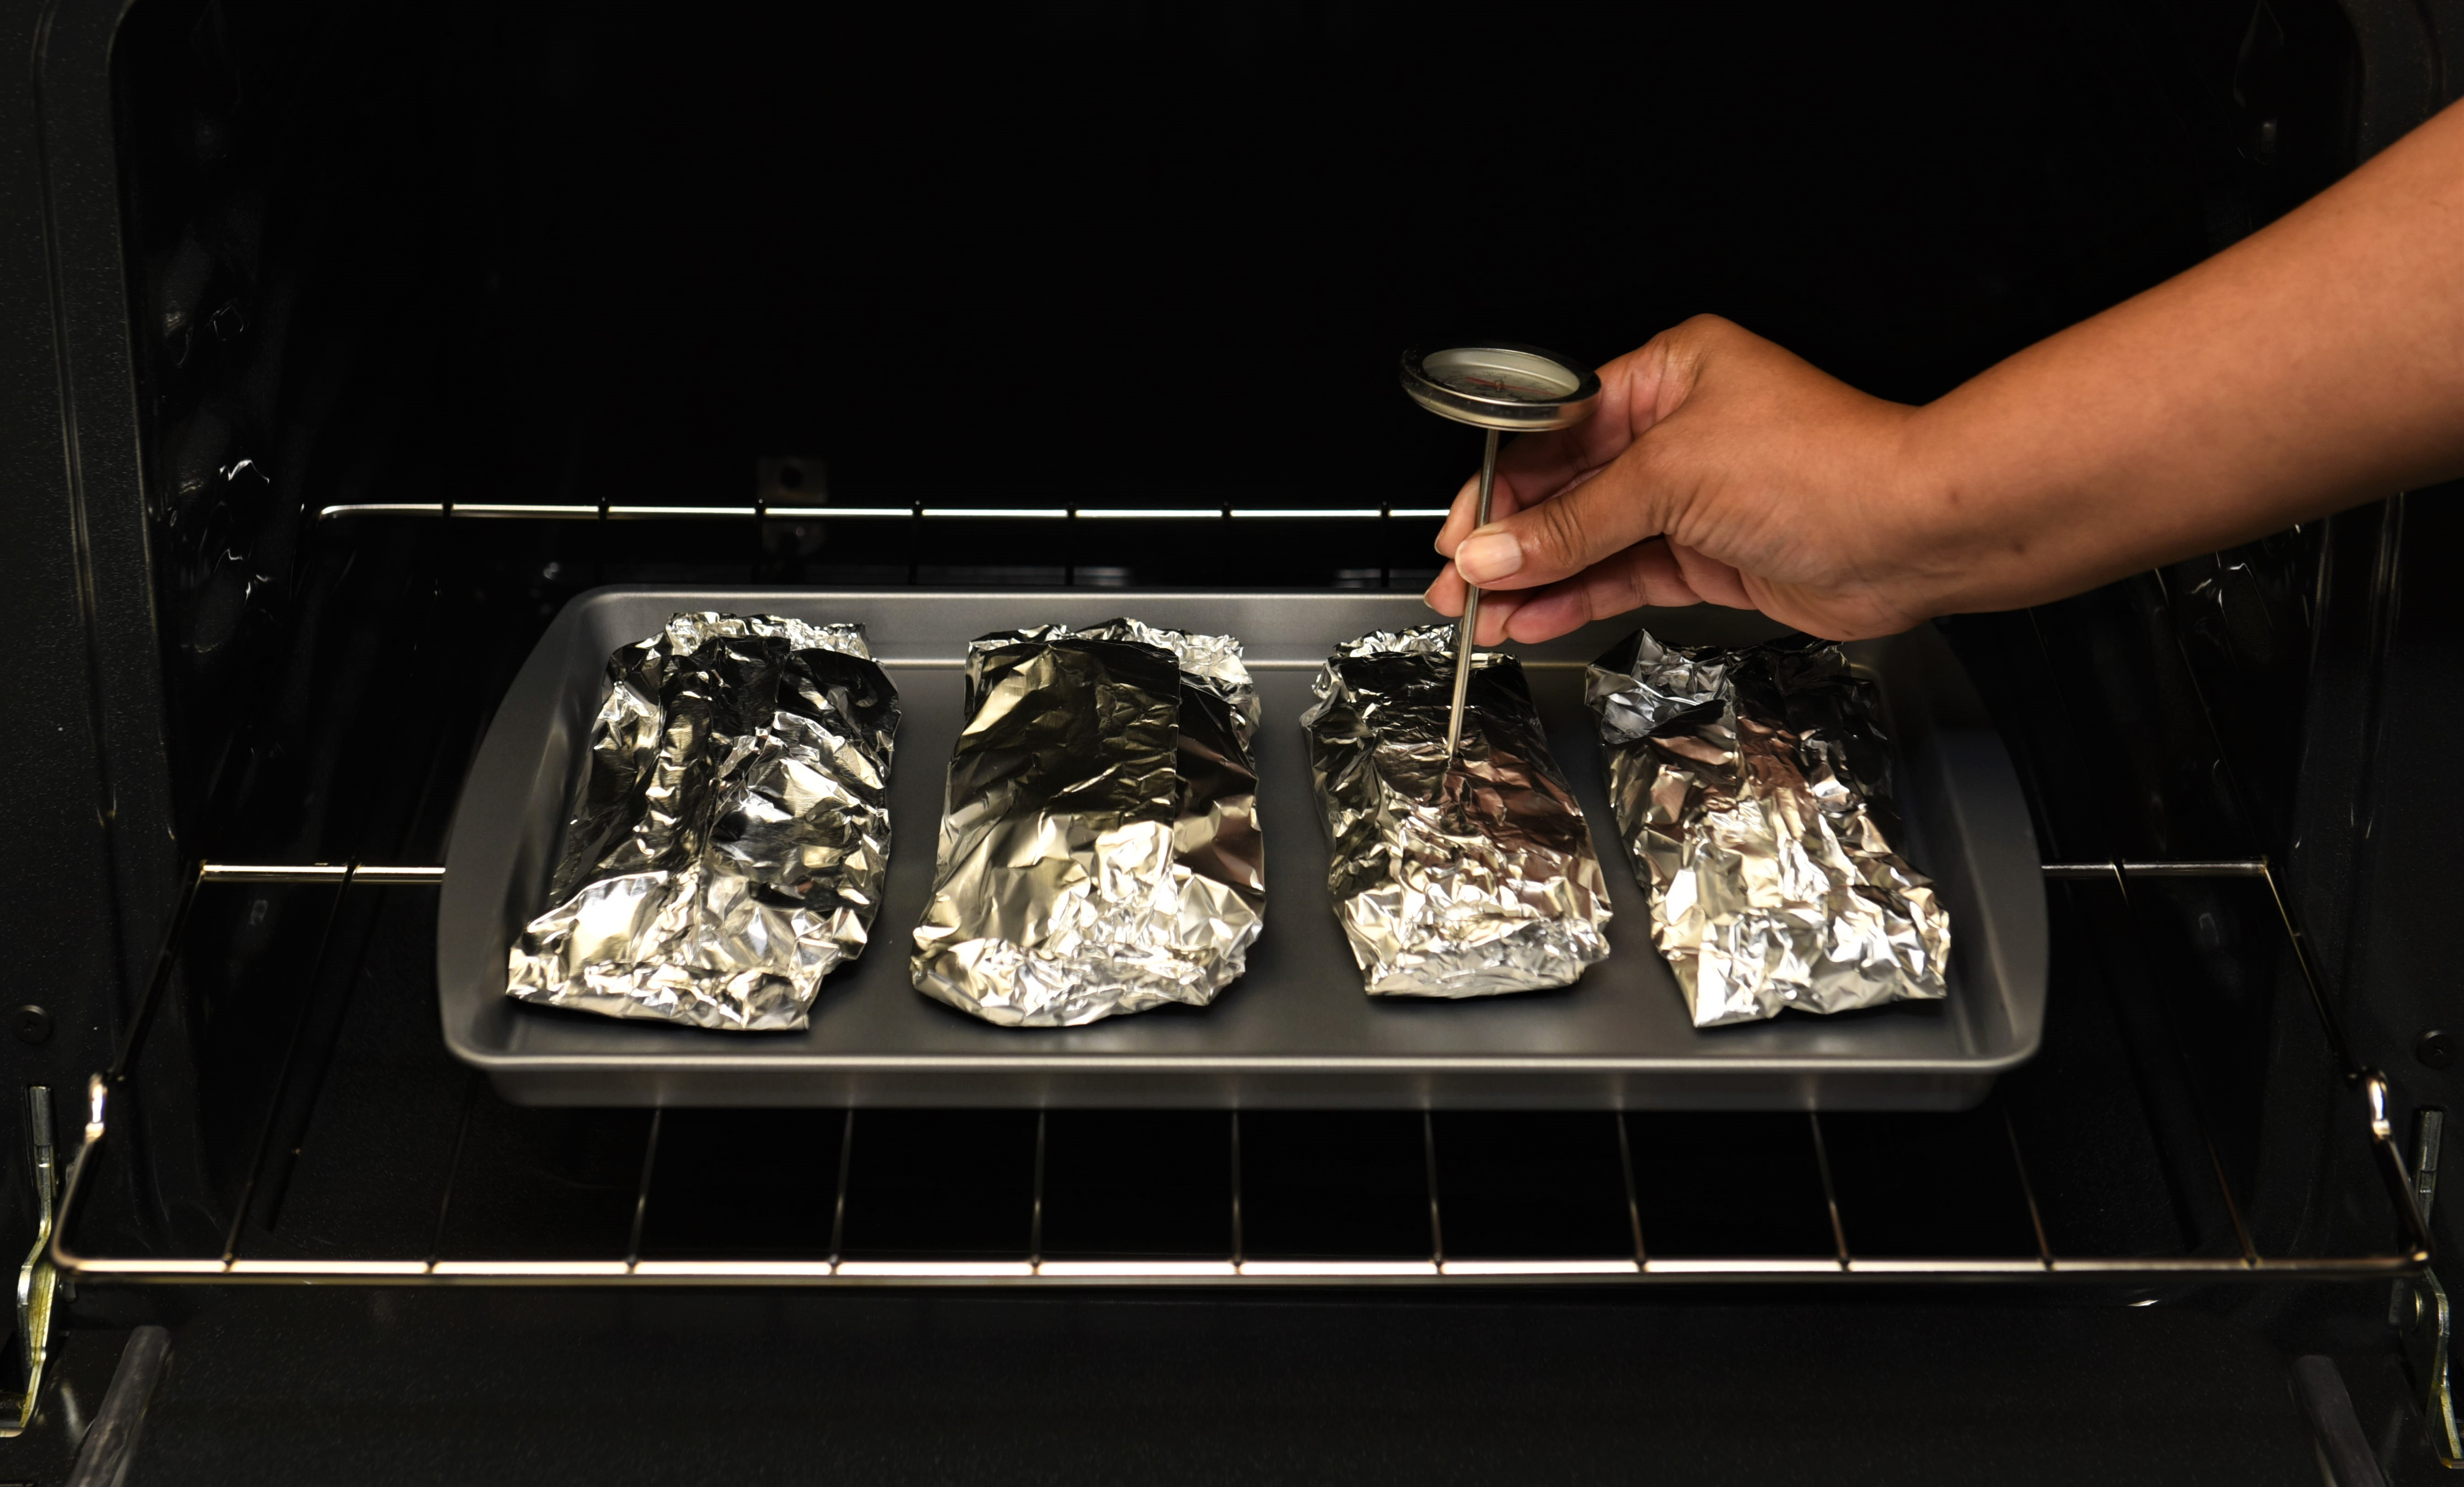 Four foil pouches on a baking sheet in an oven with a woman testing the temperature of one.